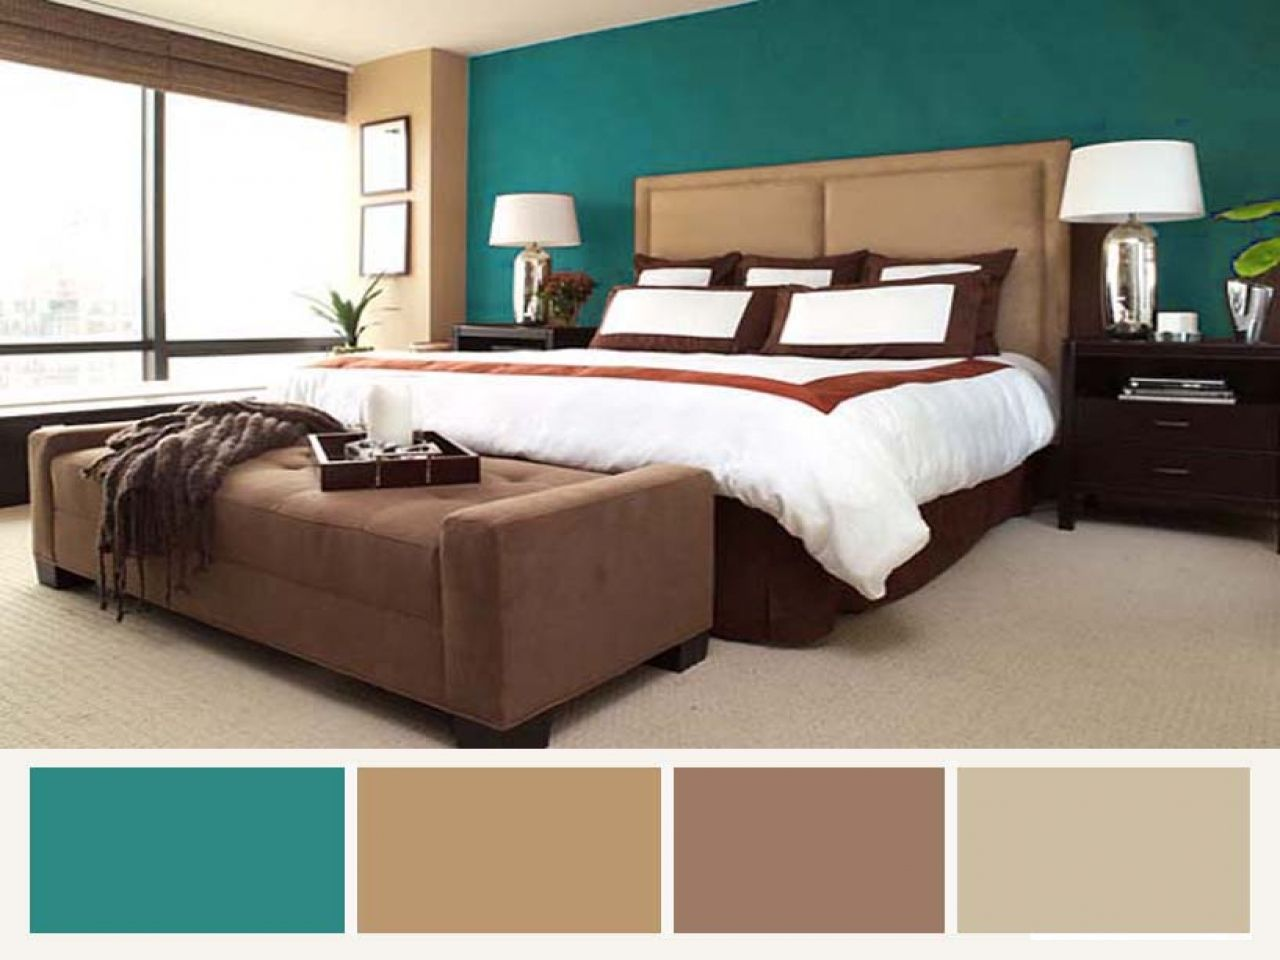 Turquoise And Brown Bedroom Blue Paint Colors For Bedrooms Brown Bedroom Color Combination Master Bedroom Colors Bedroom Color Schemes